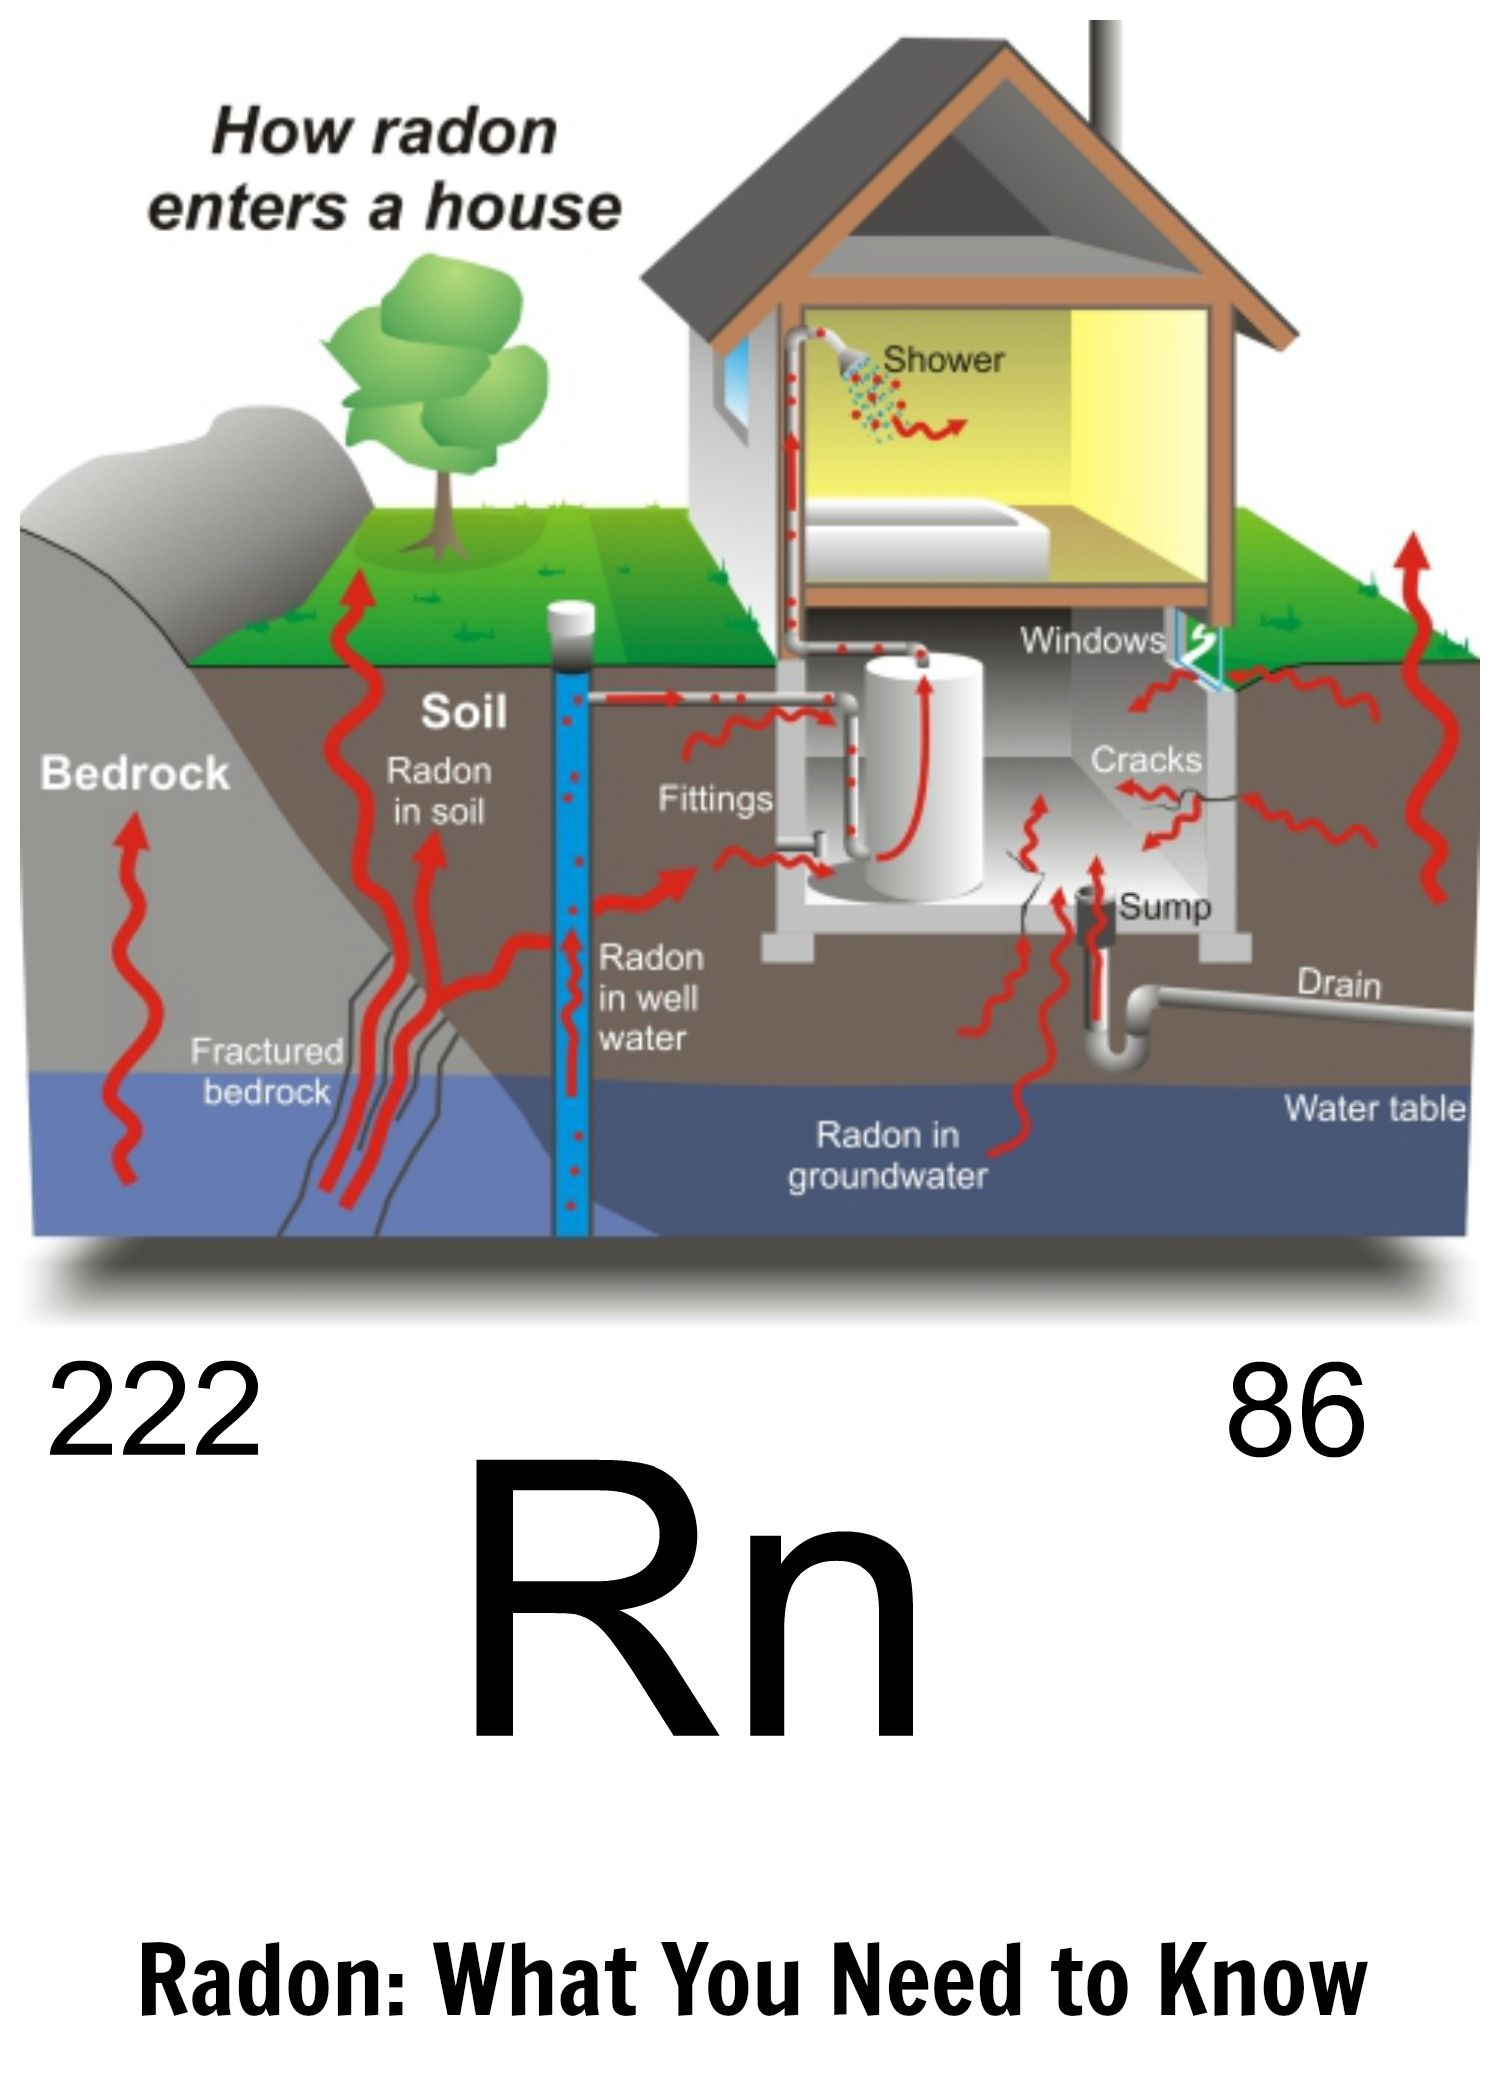 Genial Did You Know 1 In 15 Homes Has Elevated Levels Of Radon? The Good News